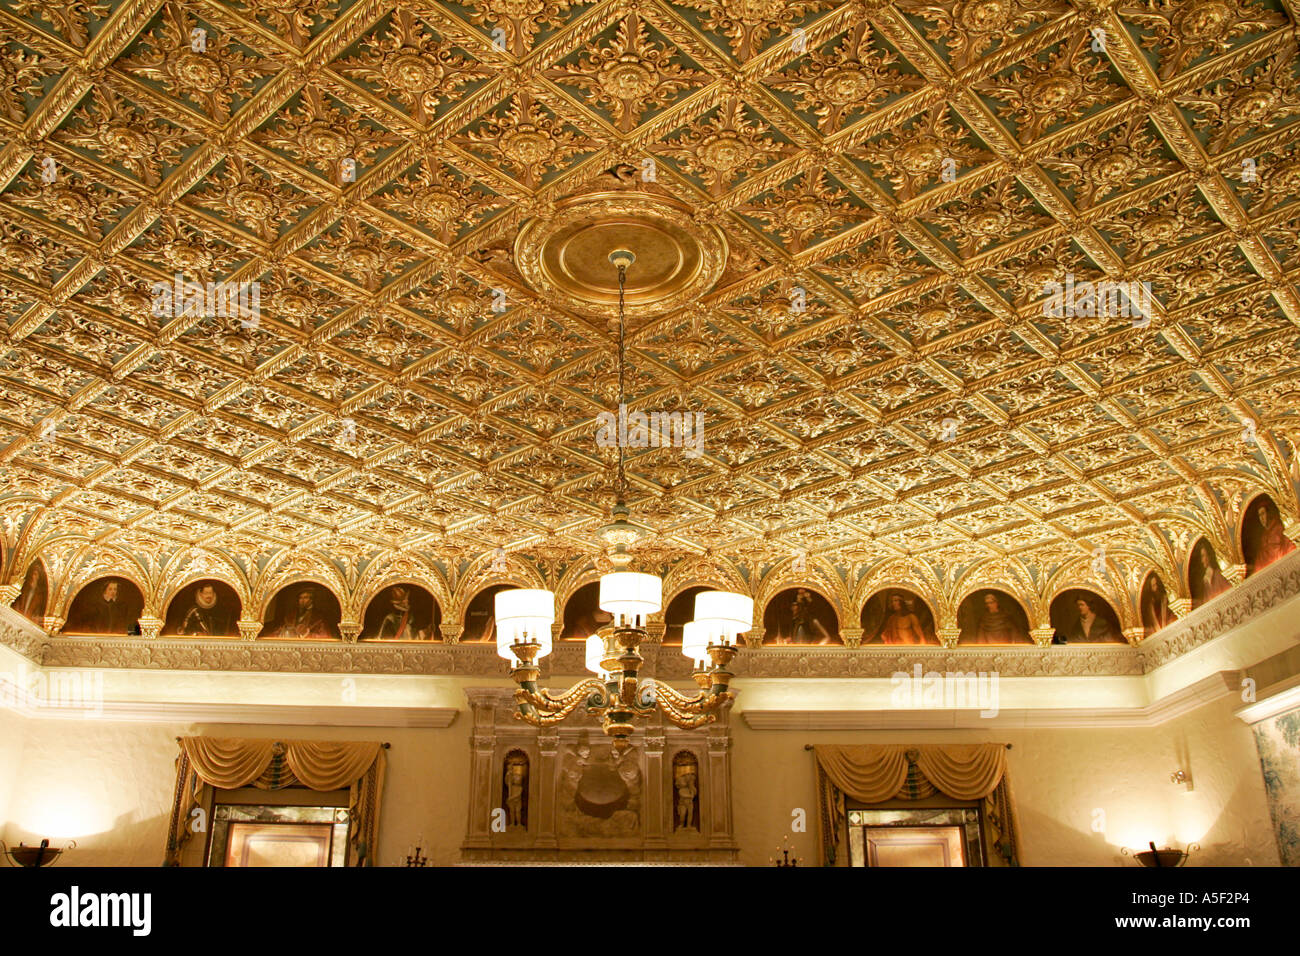 Decorative Gold Ceiling The Breakers Hotel Palm Beach Luxury Interior  Typical Wedding Boll Room Dance Decoration Columns Windows